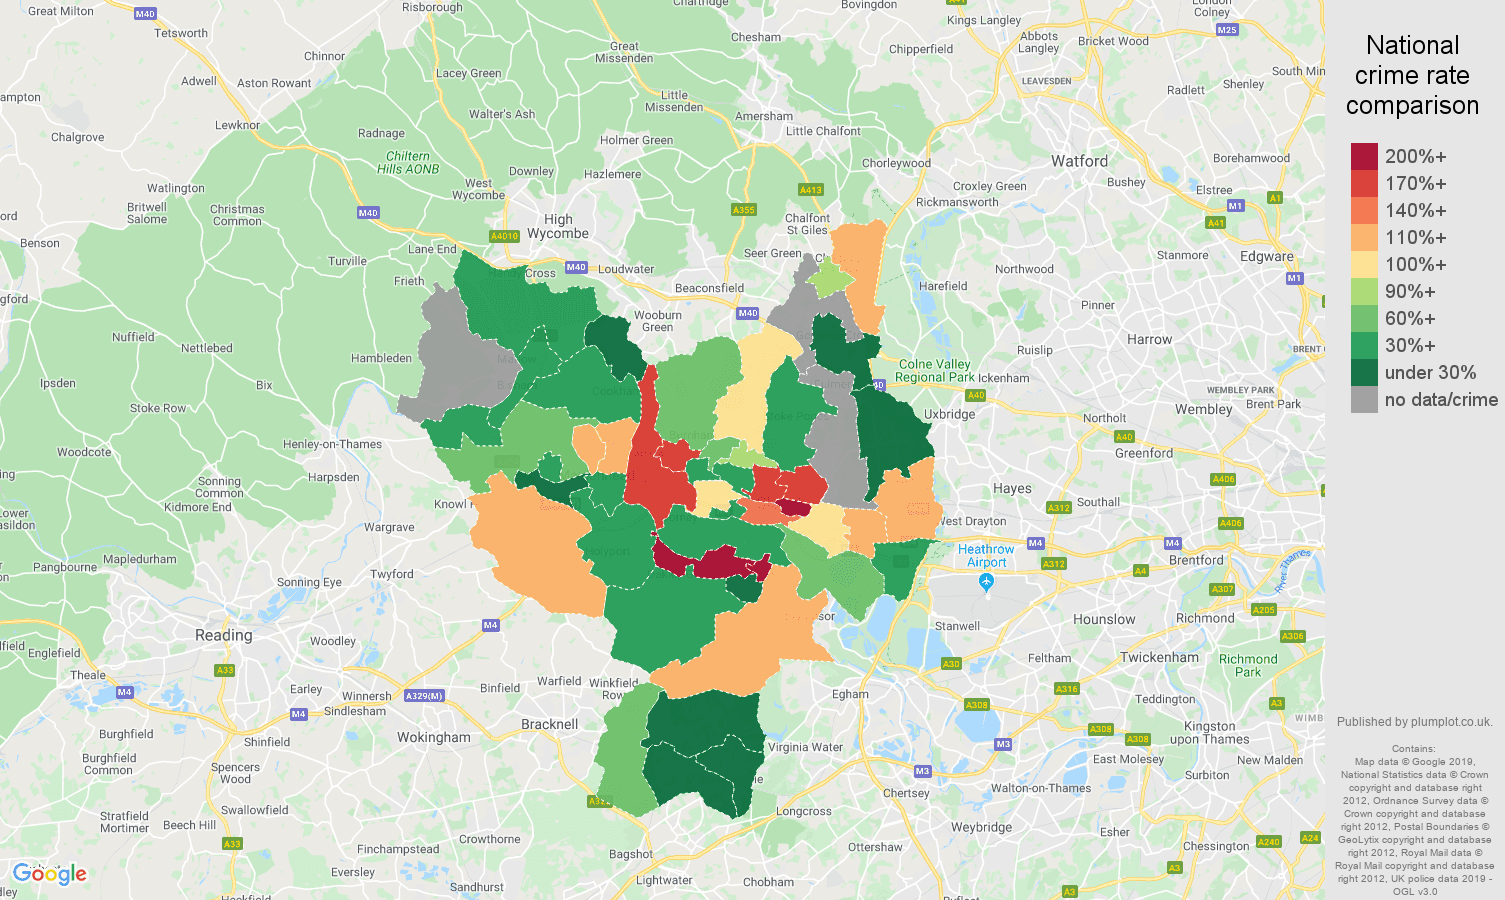 Slough possession of weapons crime rate comparison map